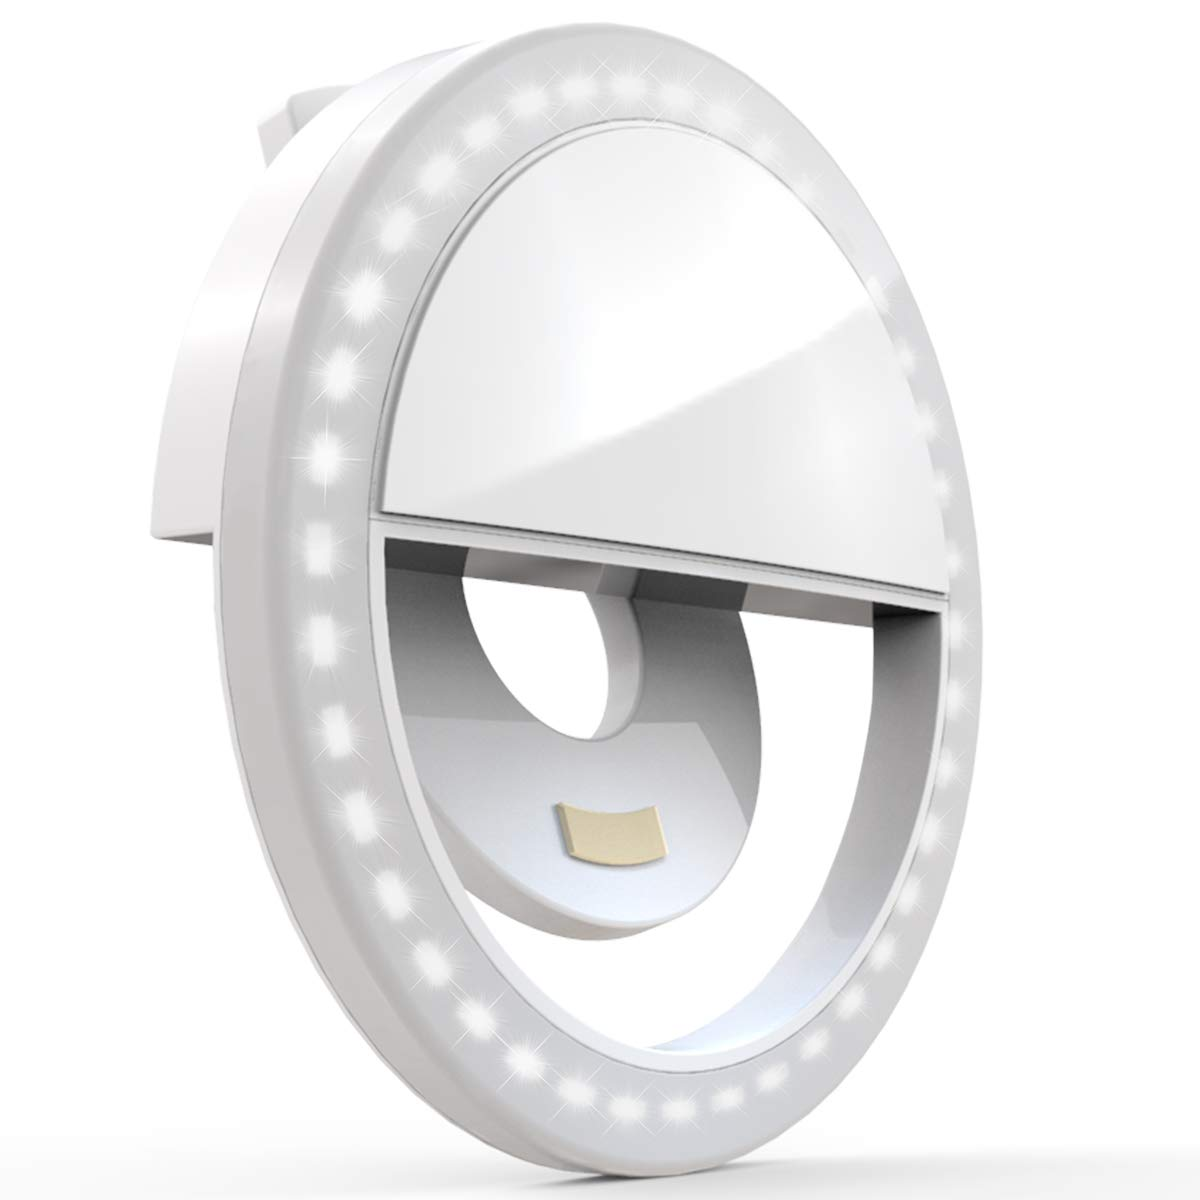 Auxiwa Clip on Selfie Ring Light [Rechargeable Battery] with 36 LED for Smart Phone Camera Round Shape, White by Auxiwa (Image #1)